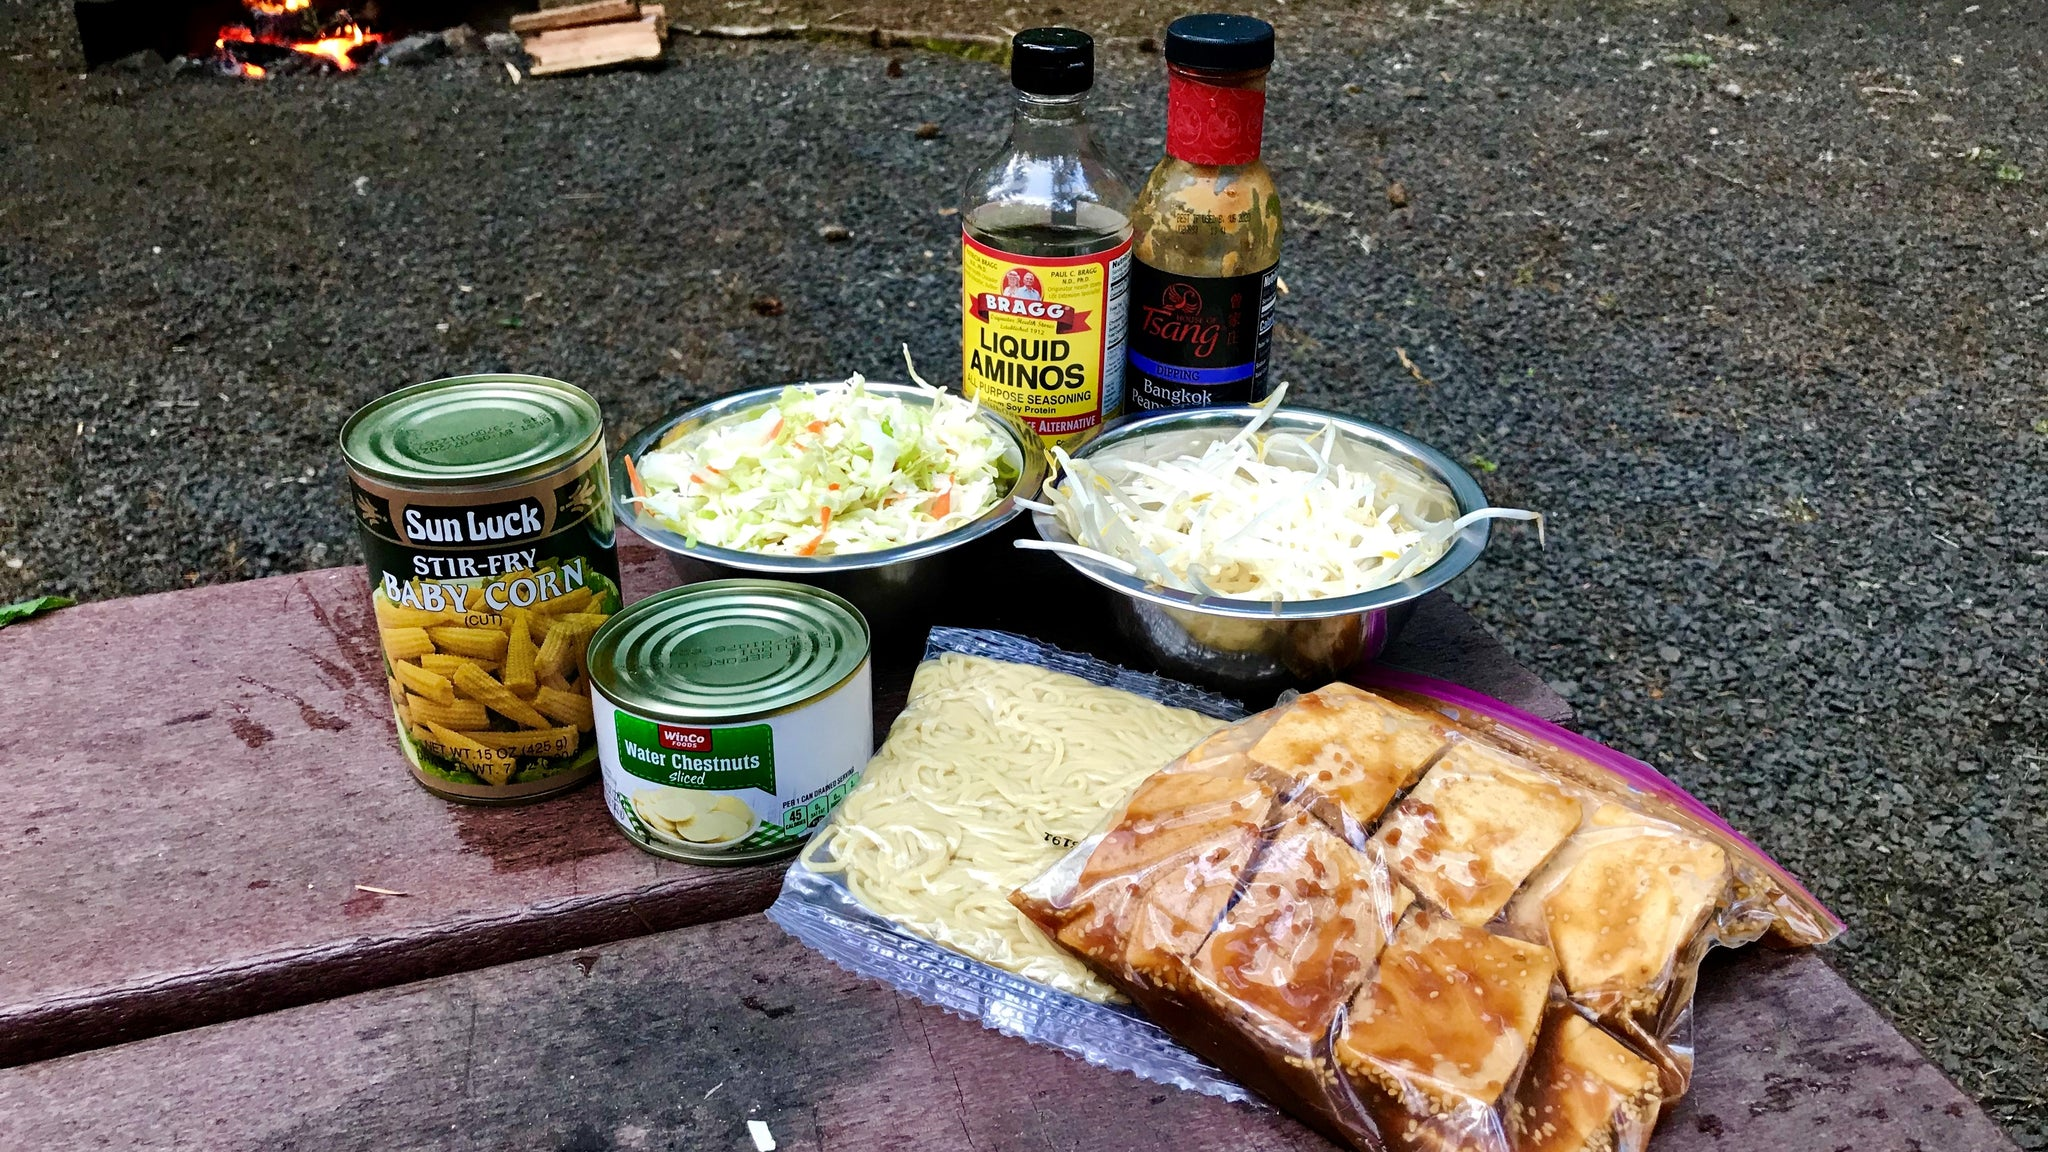 Make Ahead Camping Meals: Yakisoba Noodles